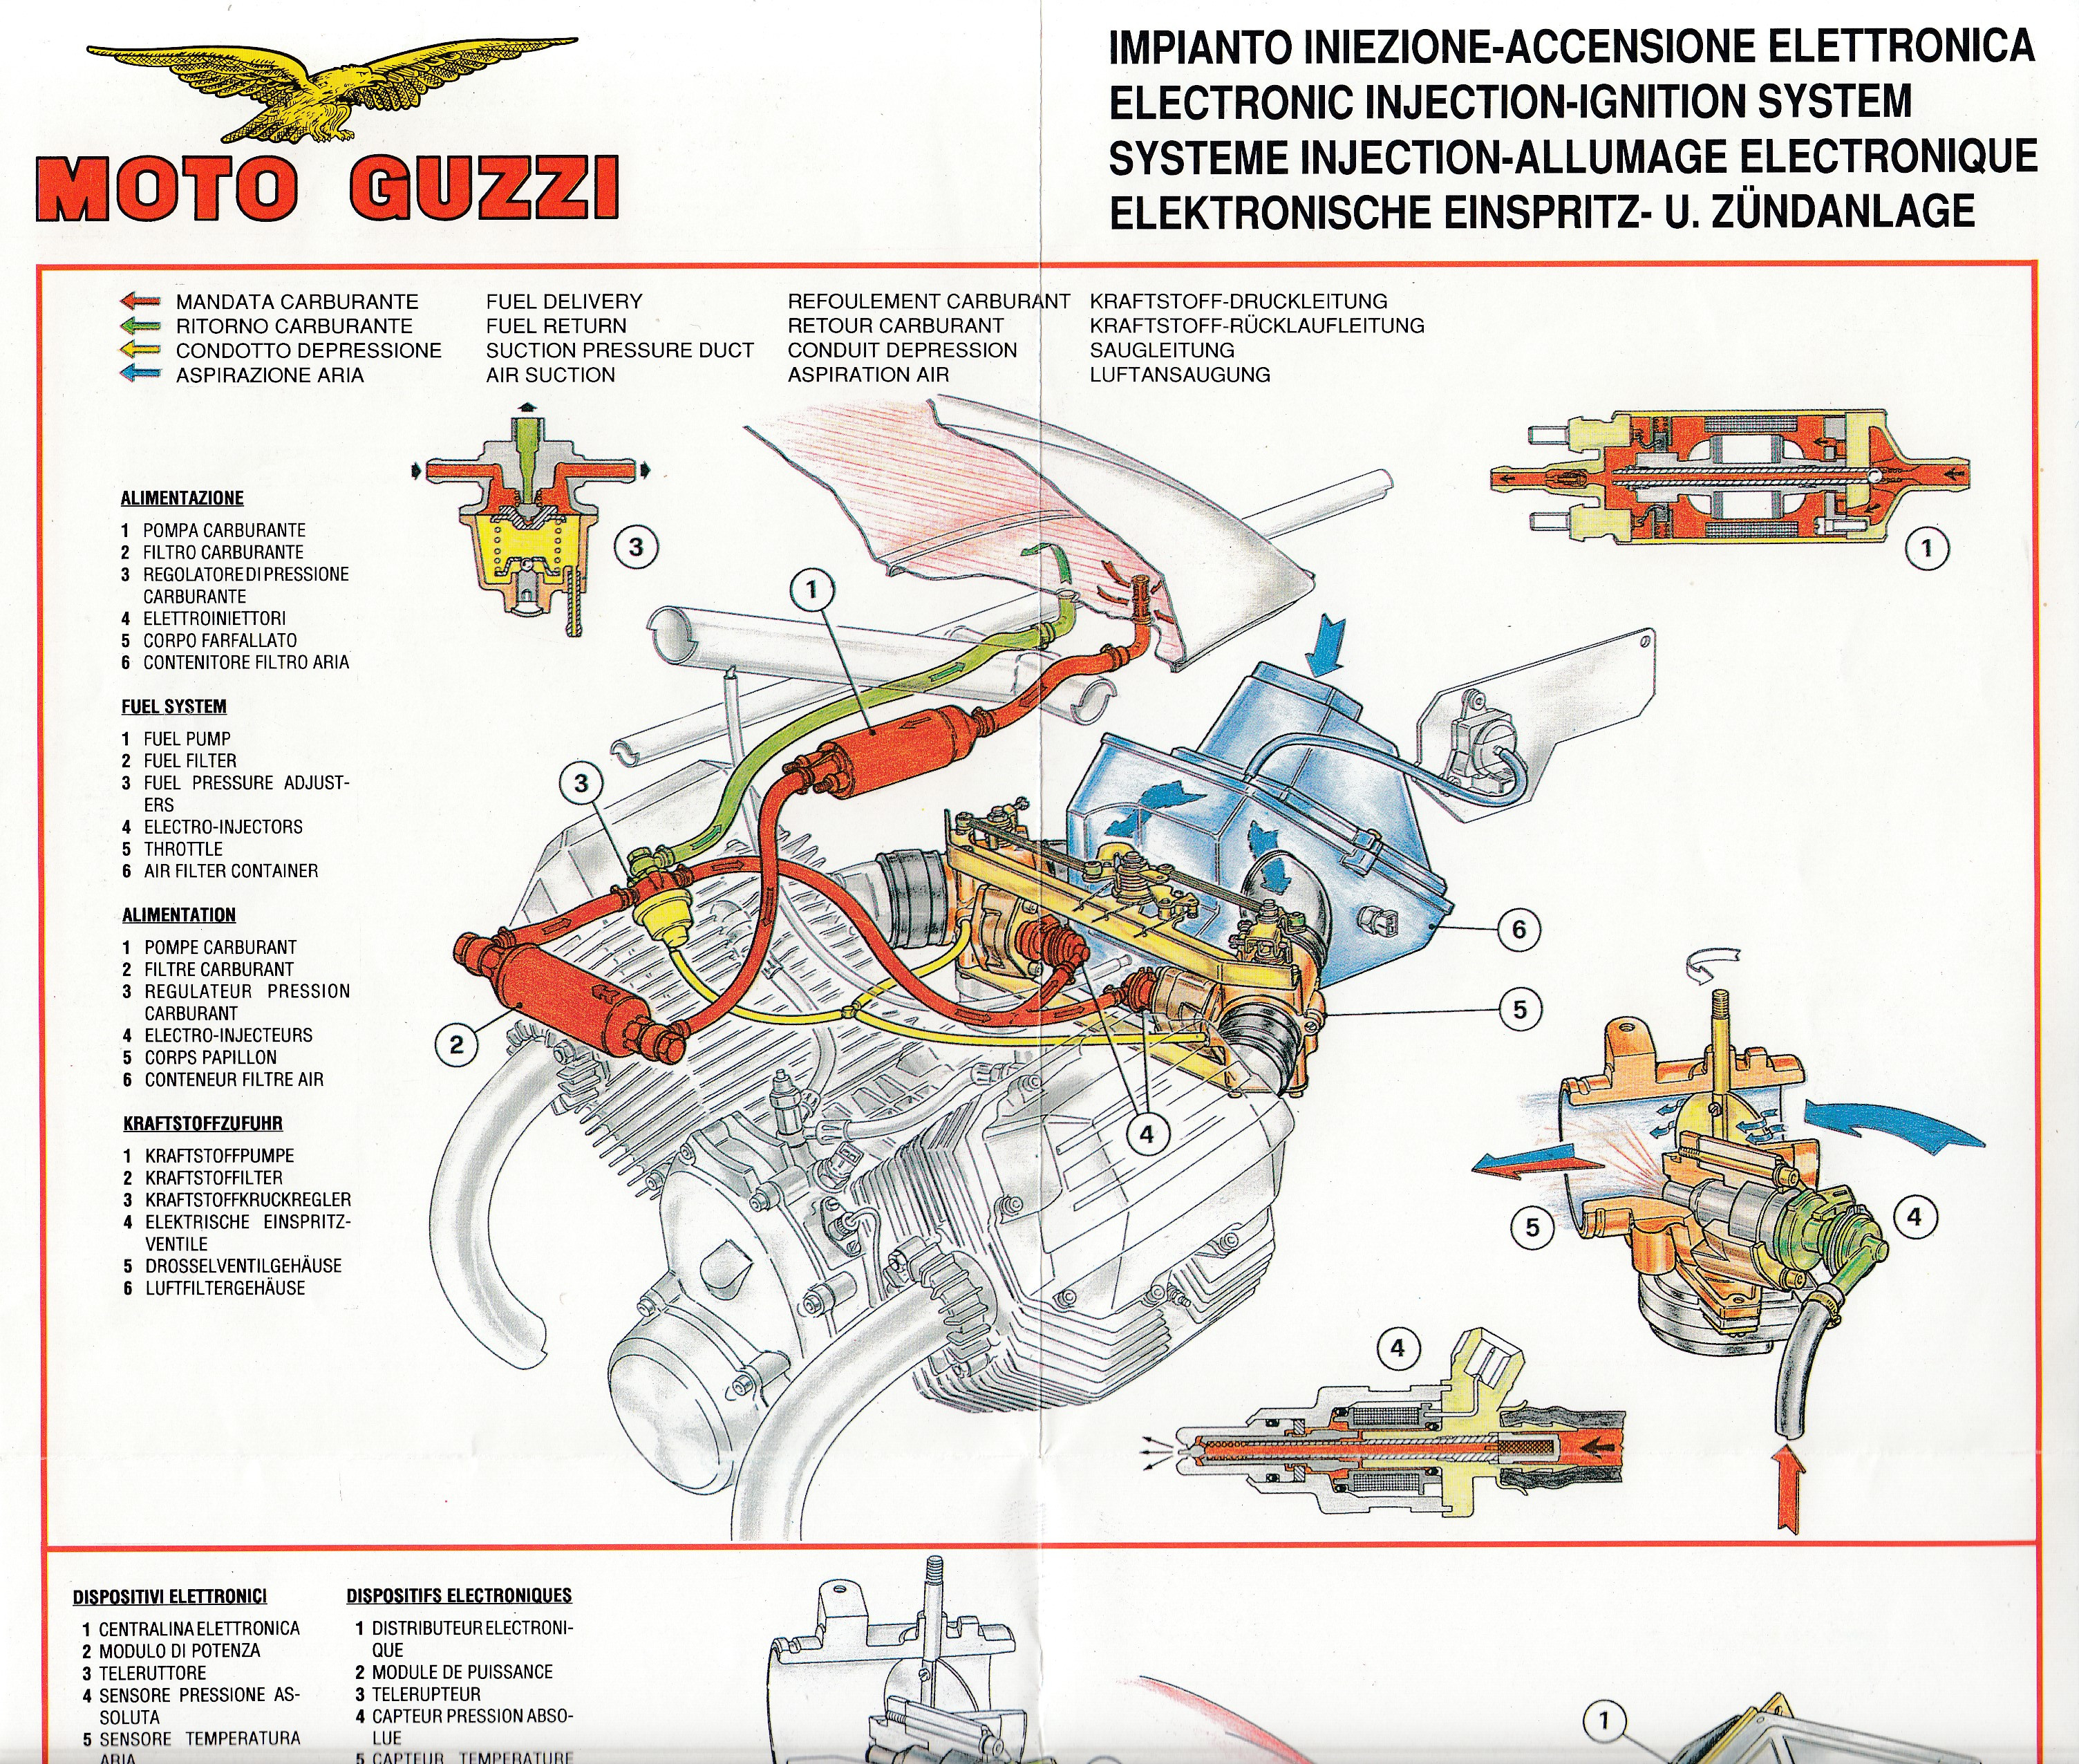 Brochure - Moto Guzzi electronic injection and ignition system